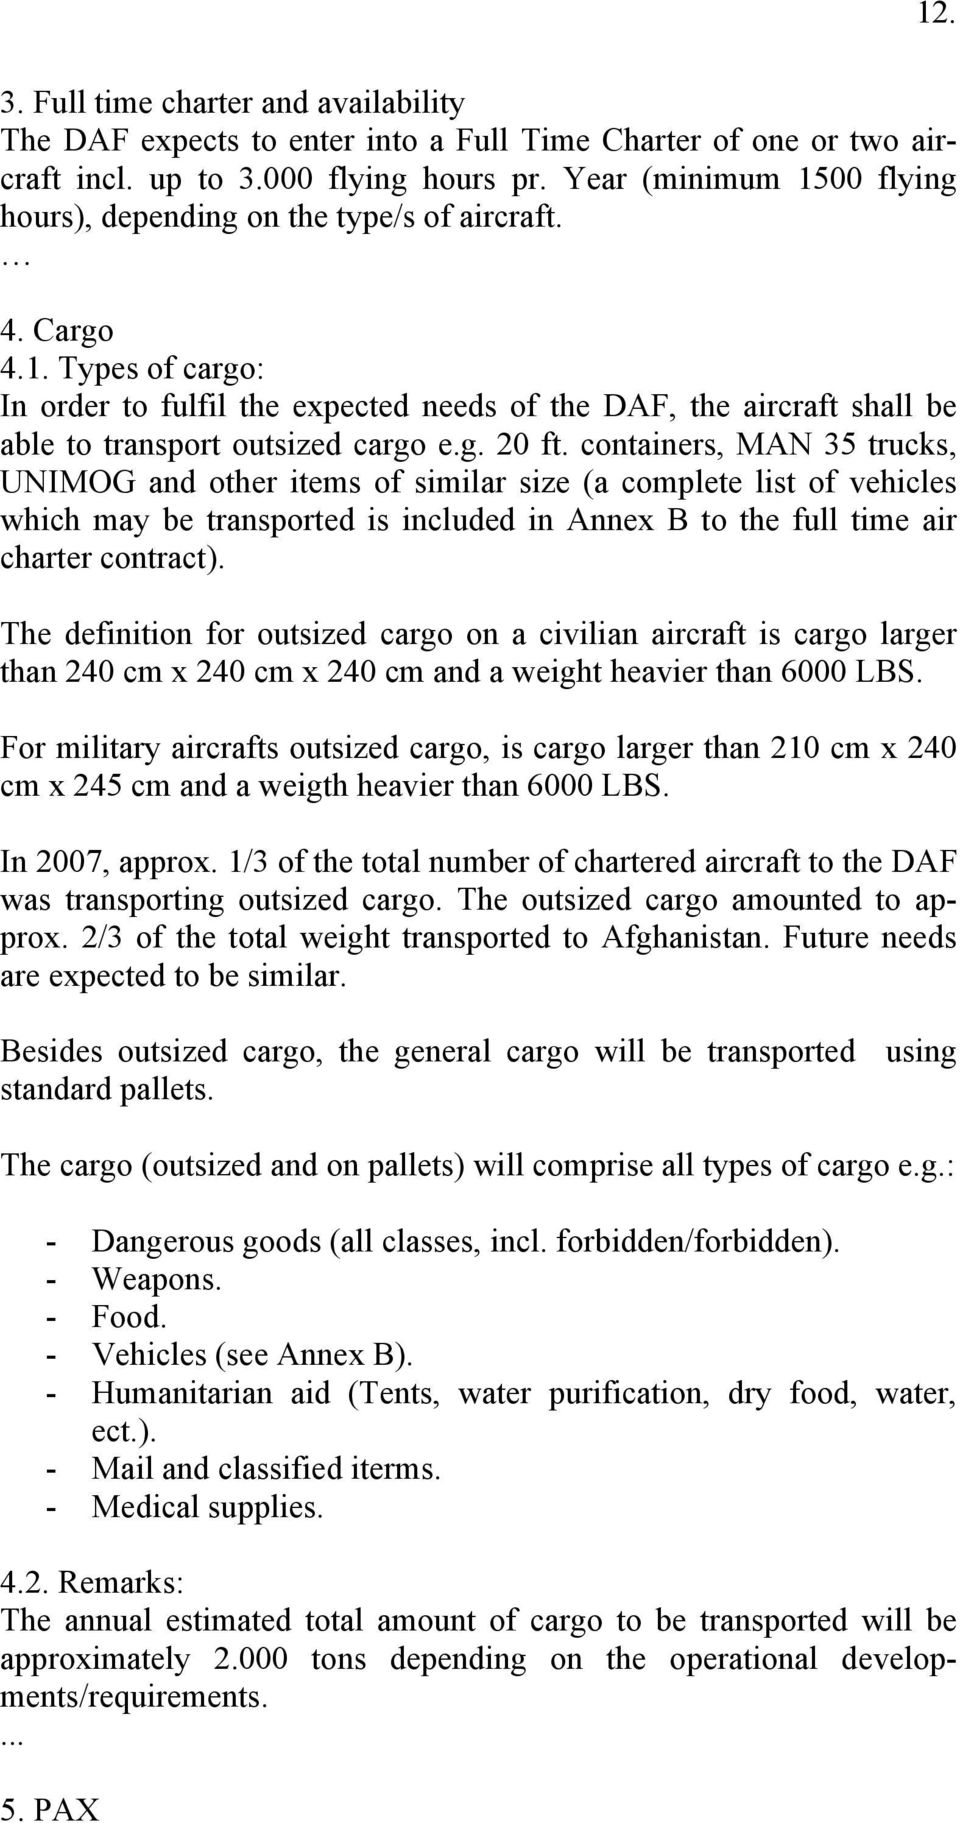 g. 20 ft. containers, MAN 35 trucks, UNIMOG and other items of similar size (a complete list of vehicles which may be transported is included in Annex B to the full time air charter contract).